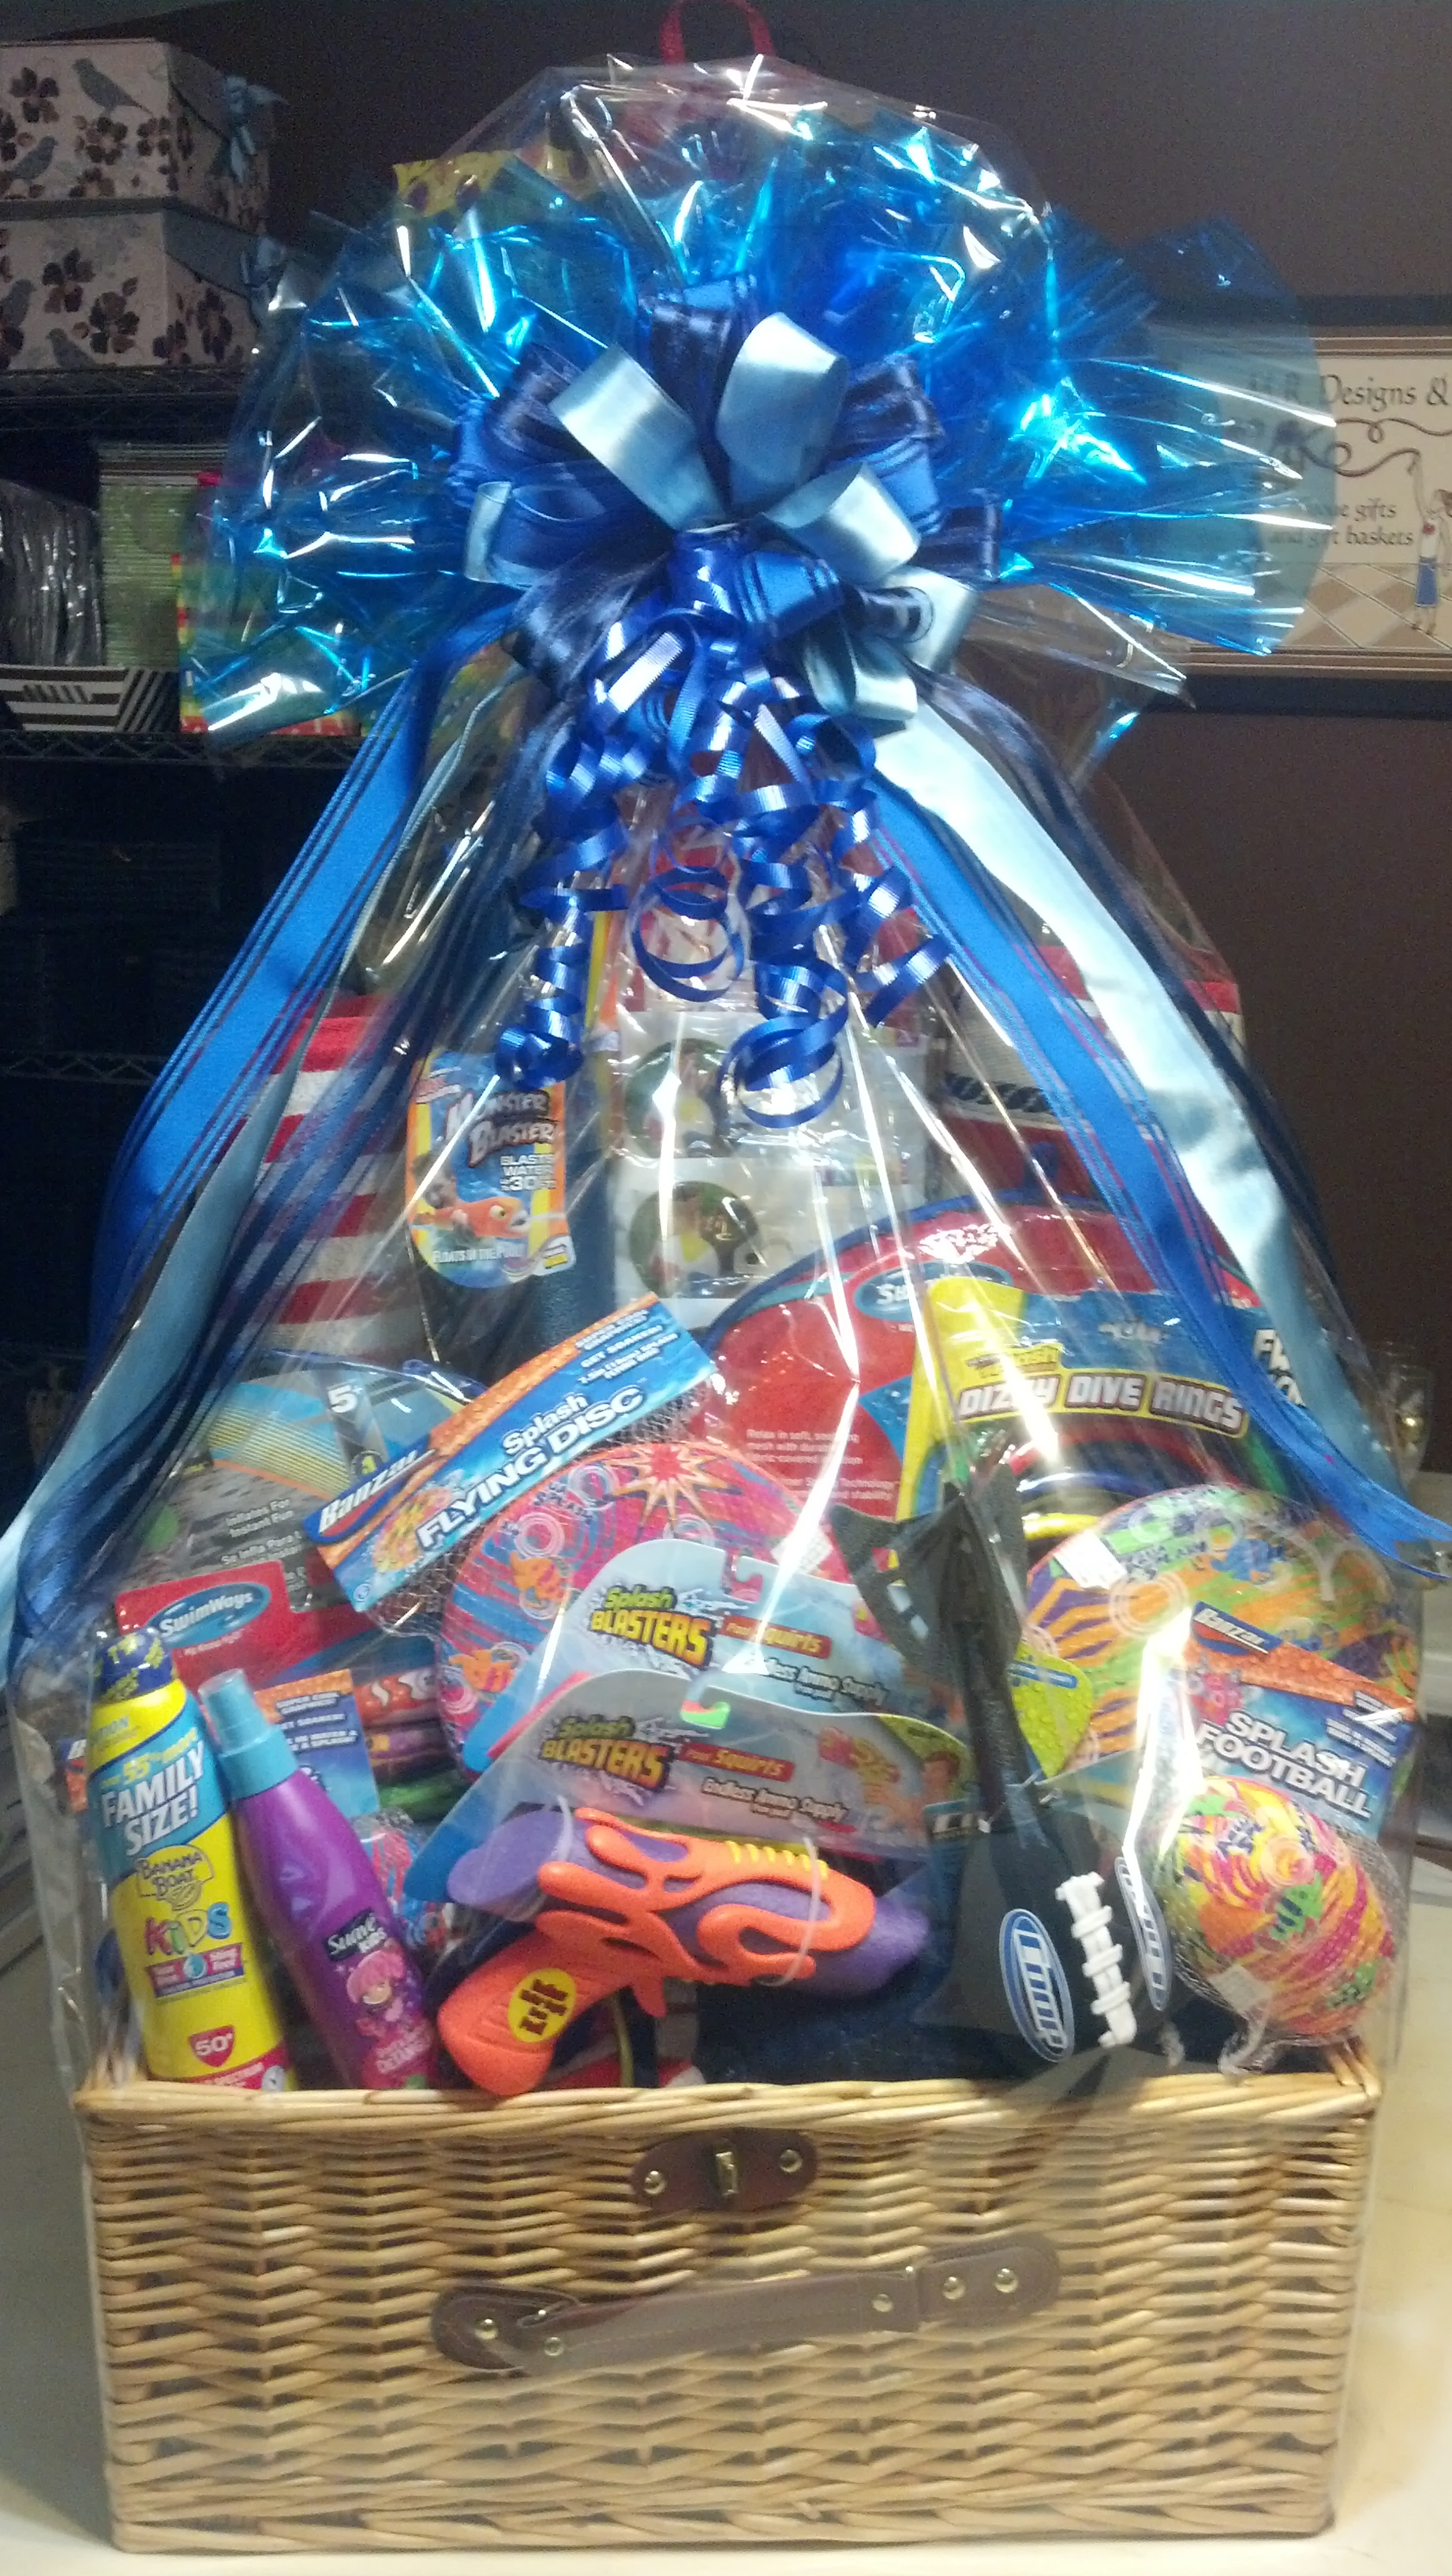 Toy Raffle Prizes : Special event and silent auction gift basket ideas by m r